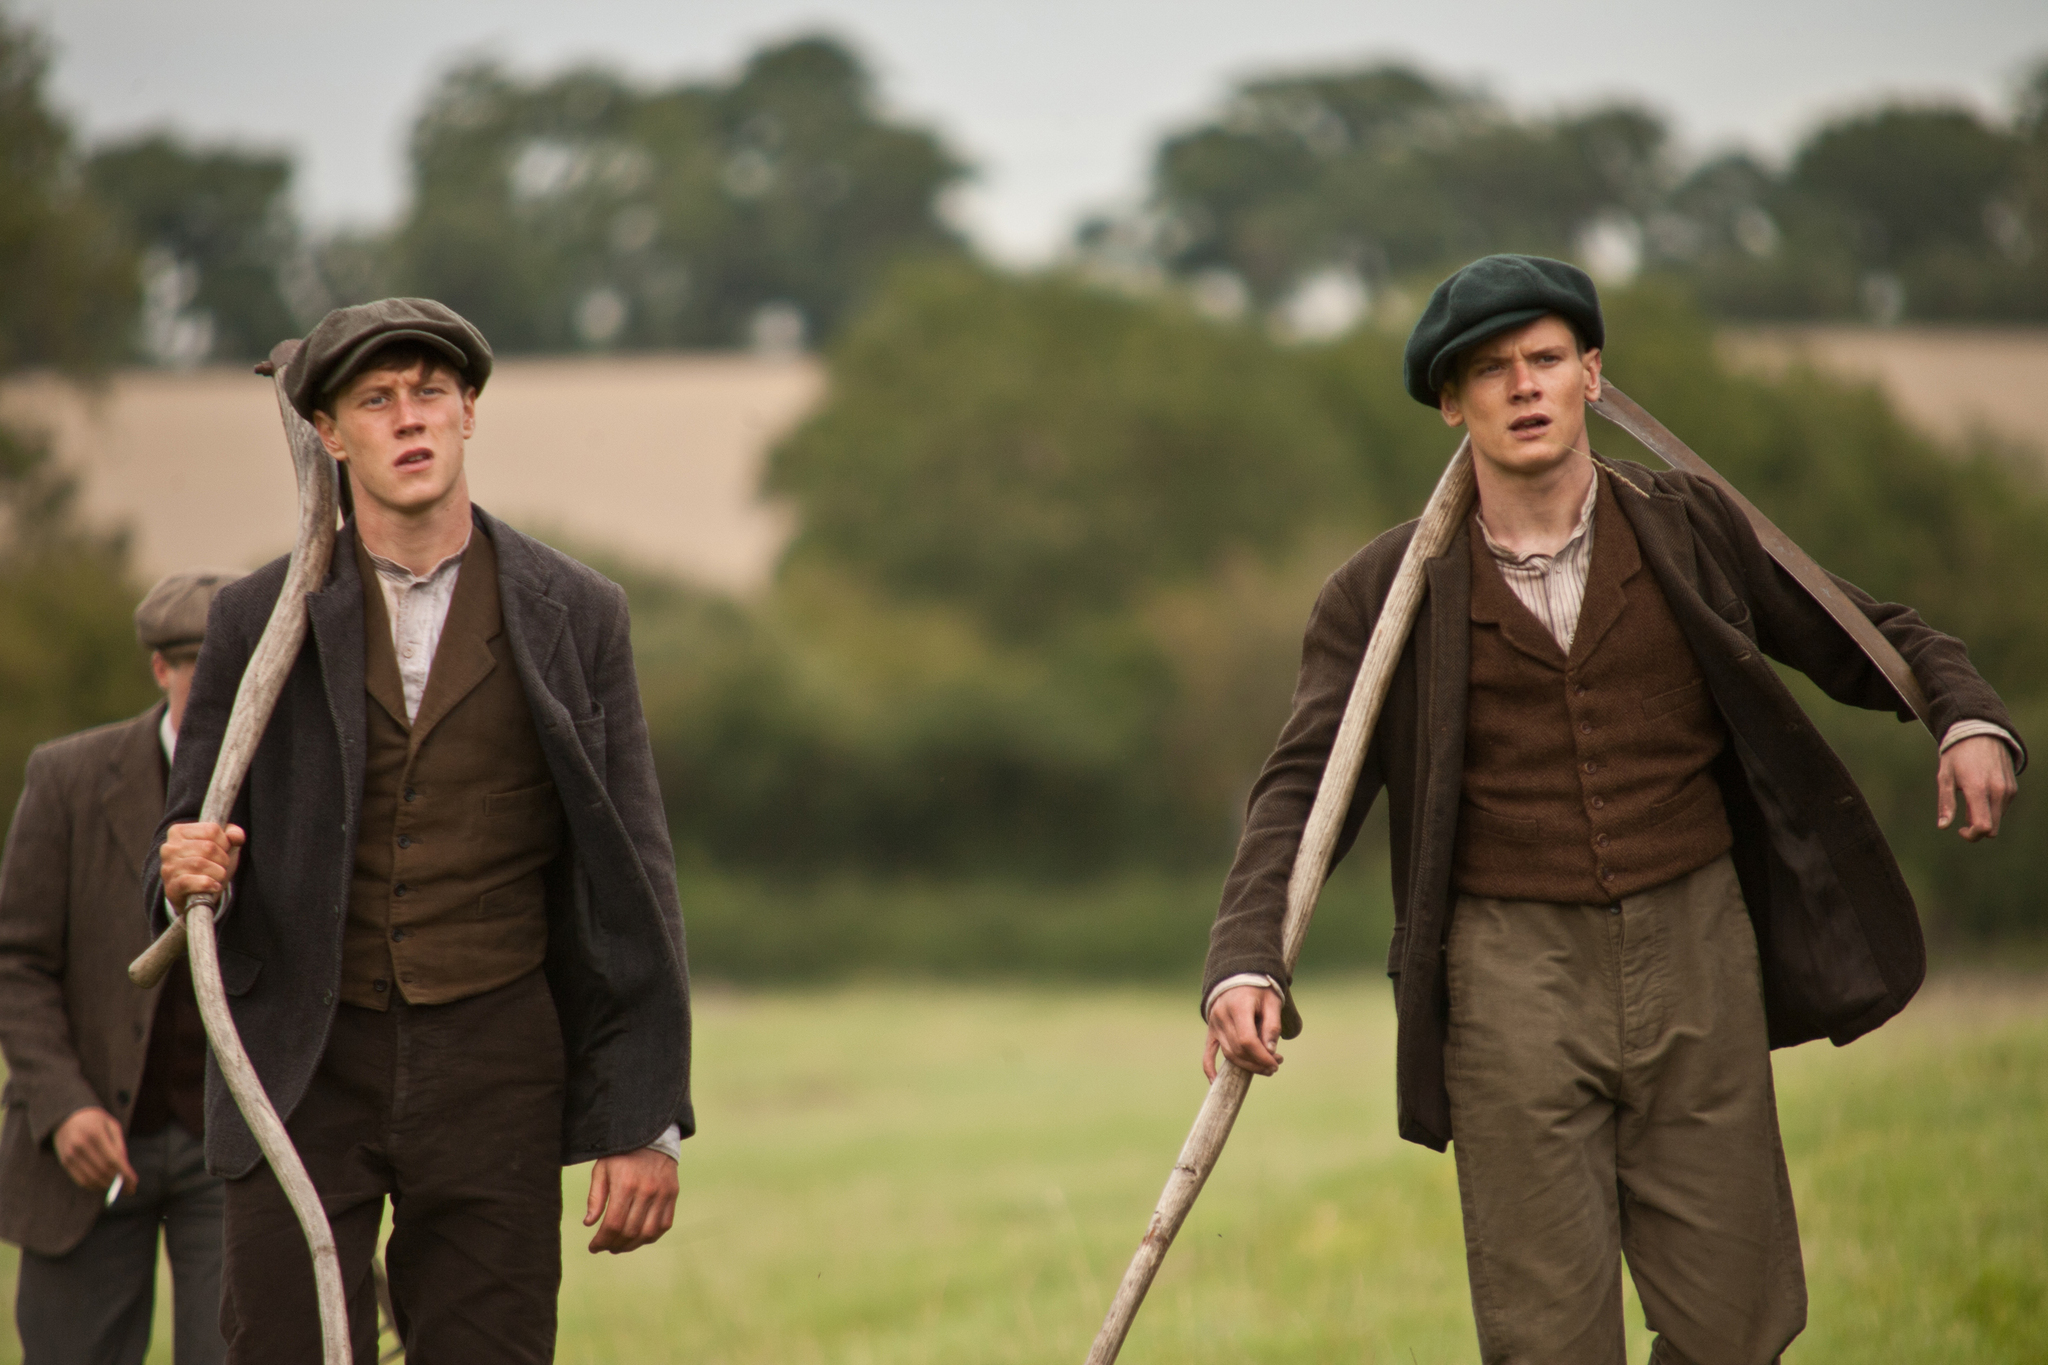 Still of George MacKay and Jack O'Connell in Private Peaceful (2012) photo #540476